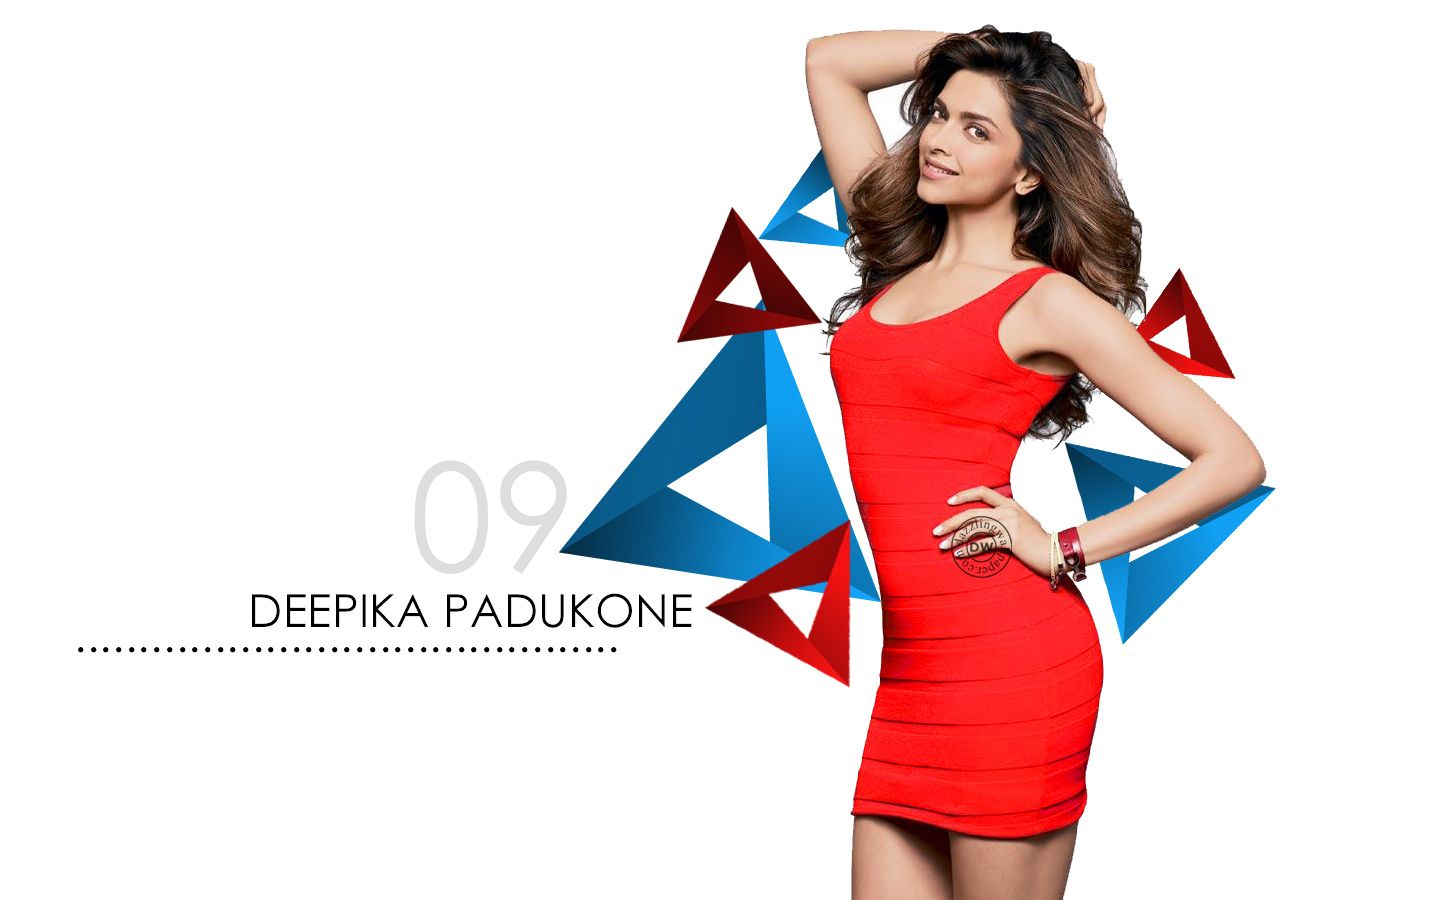 deepika padukone sexy hd wallpaper deepika padukone , hd wallpapers